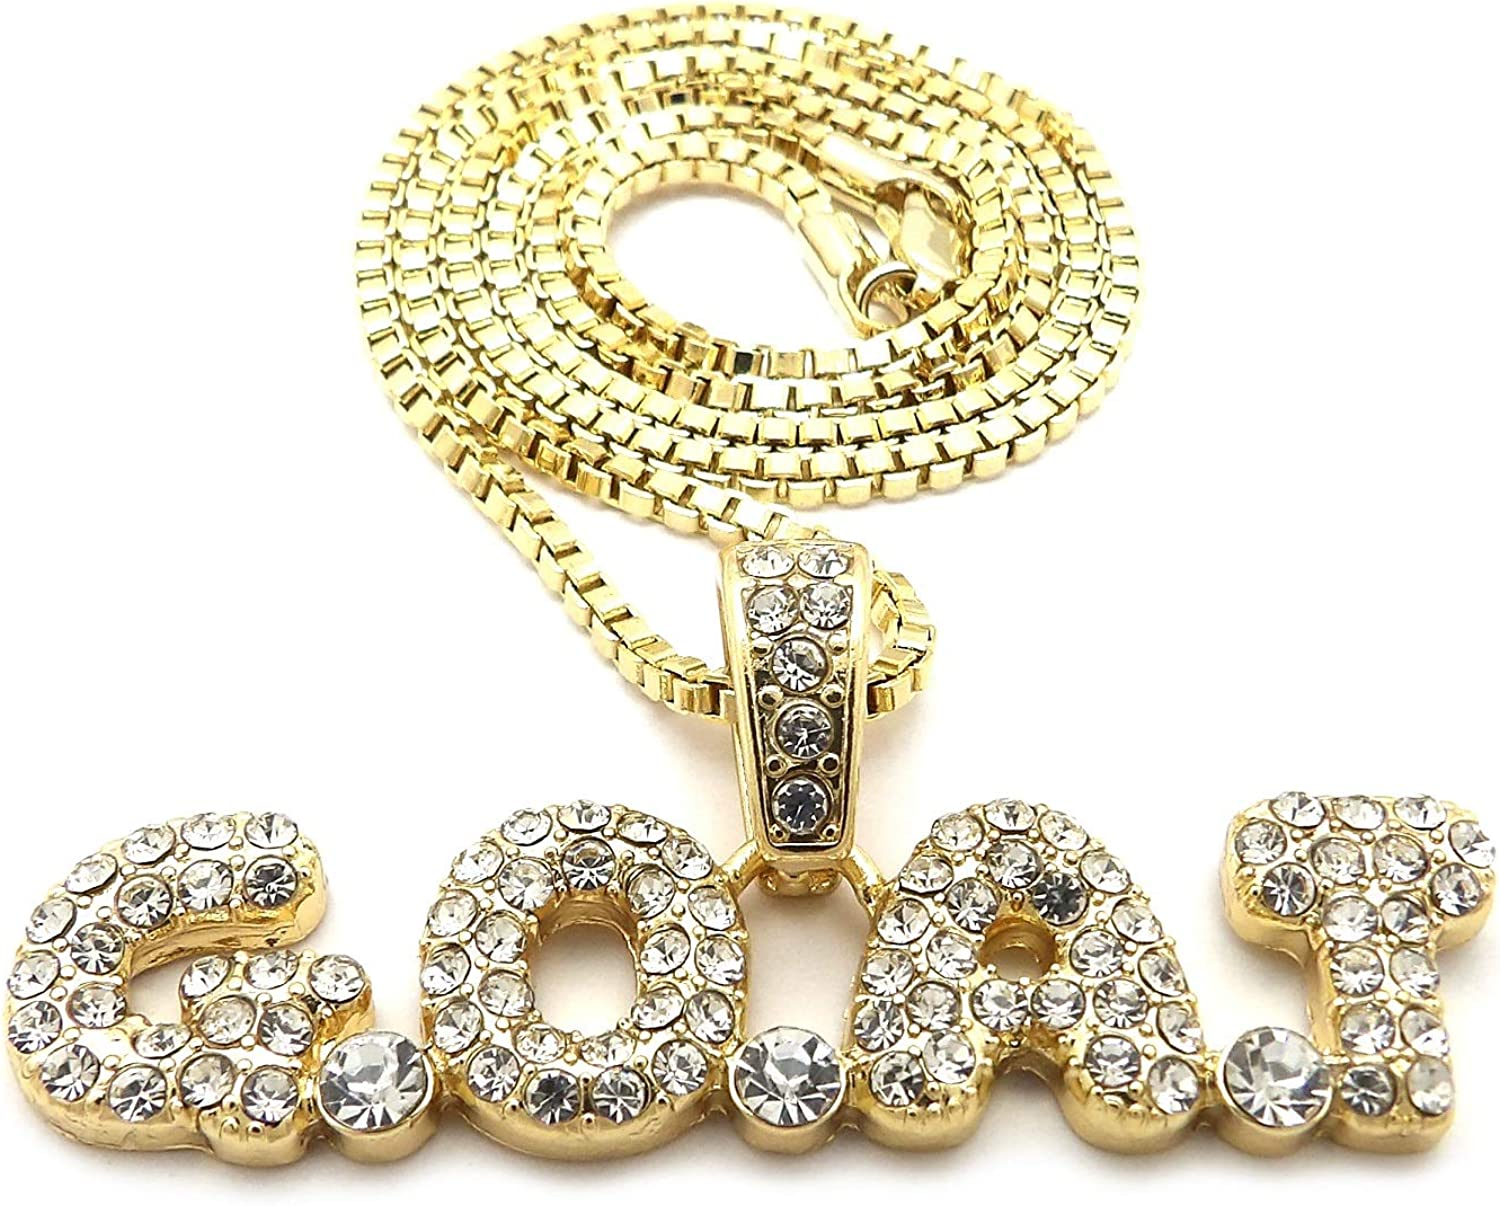 NYFASHION101 Stone Stud Bubble Letter G.O.A.T Pendant with 3mm Box Chain Necklace